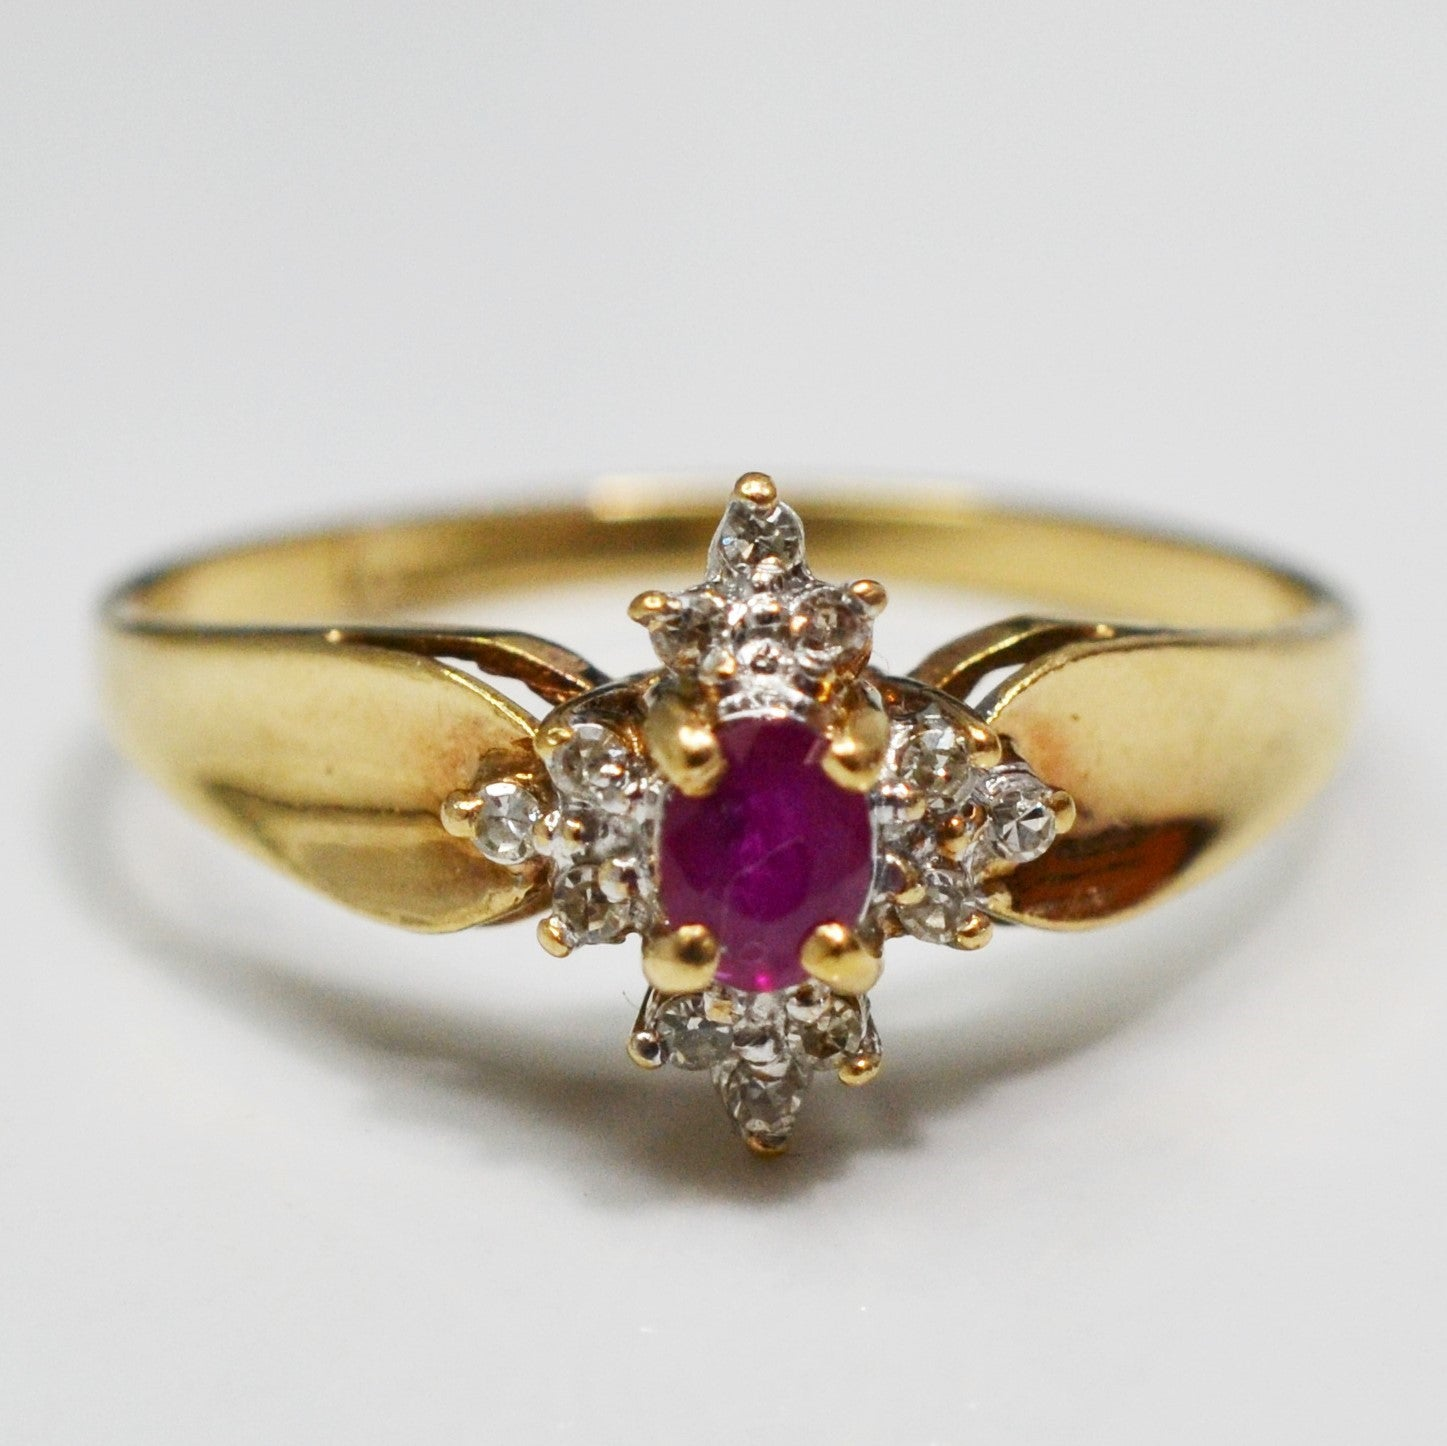 Oval Cut Ruby & Diamond Ring | 0.10 ctw, SZ 8.5 |